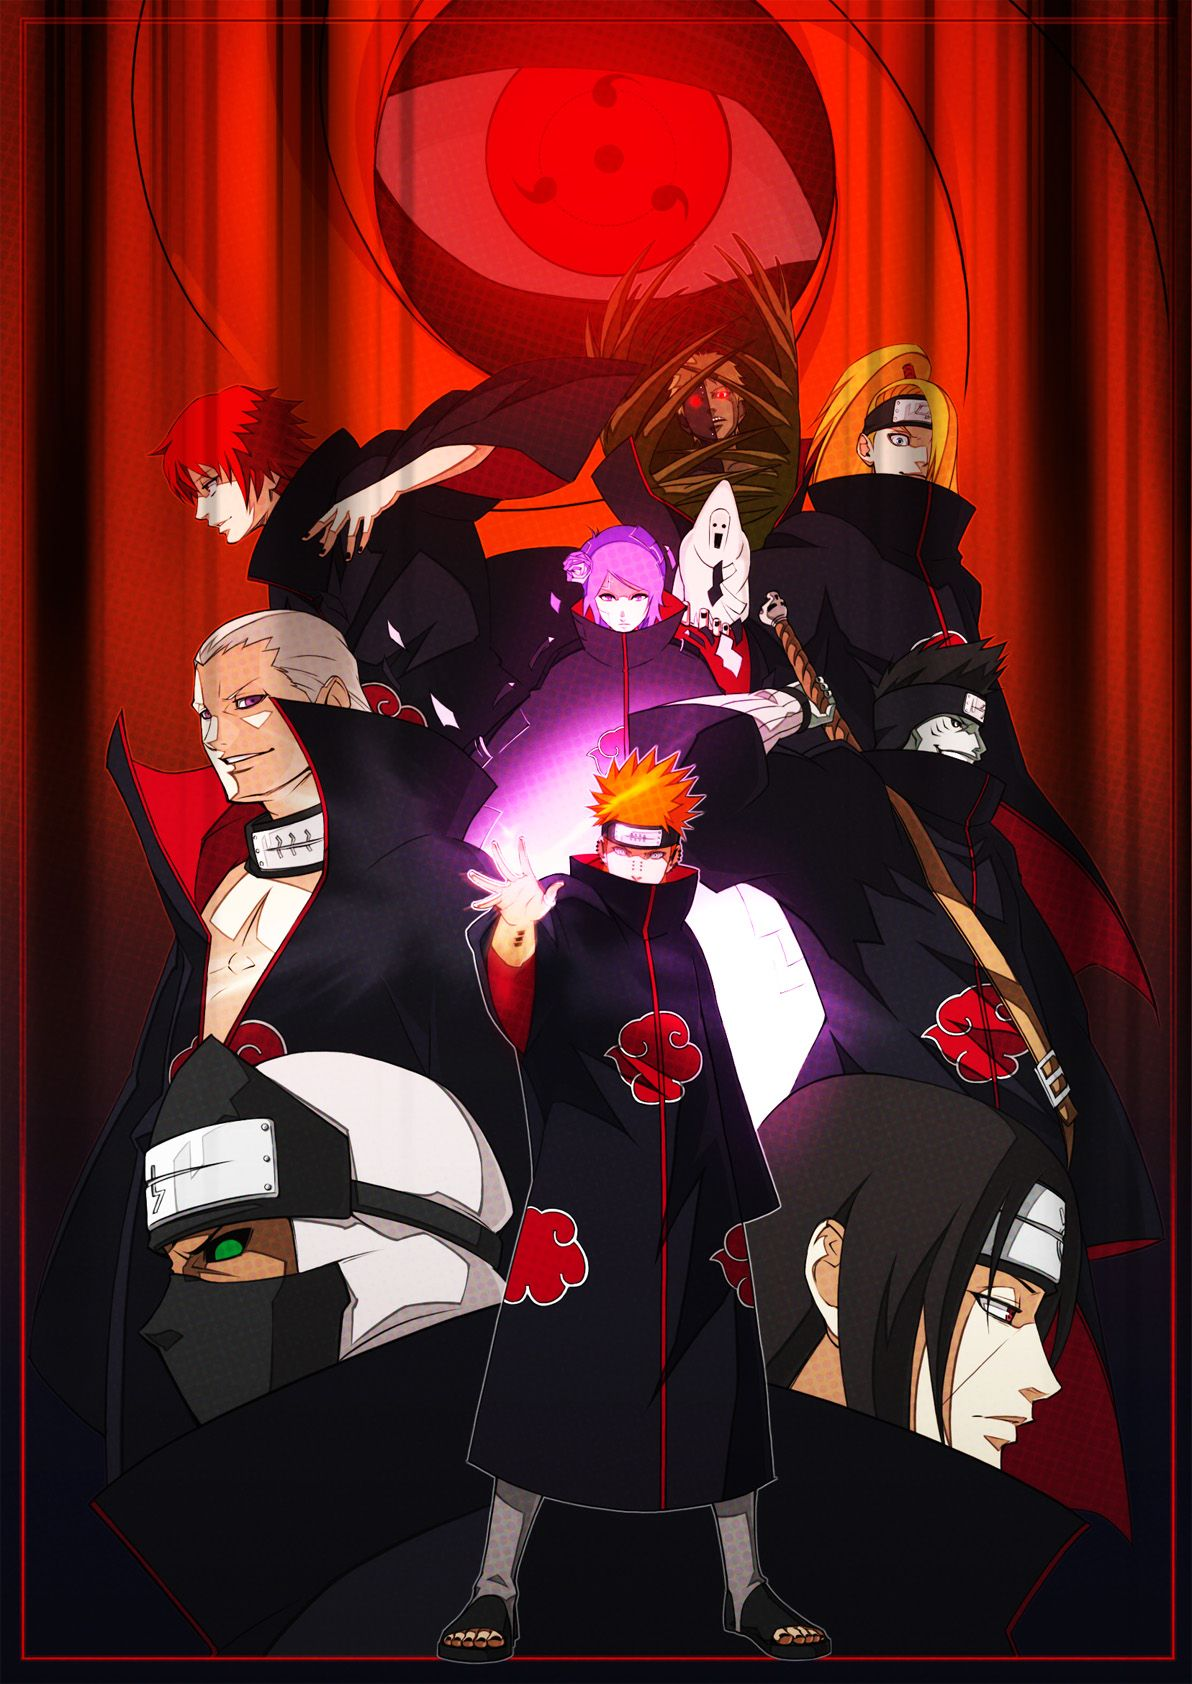 1192x1684 Akatsuki (NARUTO) Mobile Wallpaper #233450 - Zerochan Anime Image Board